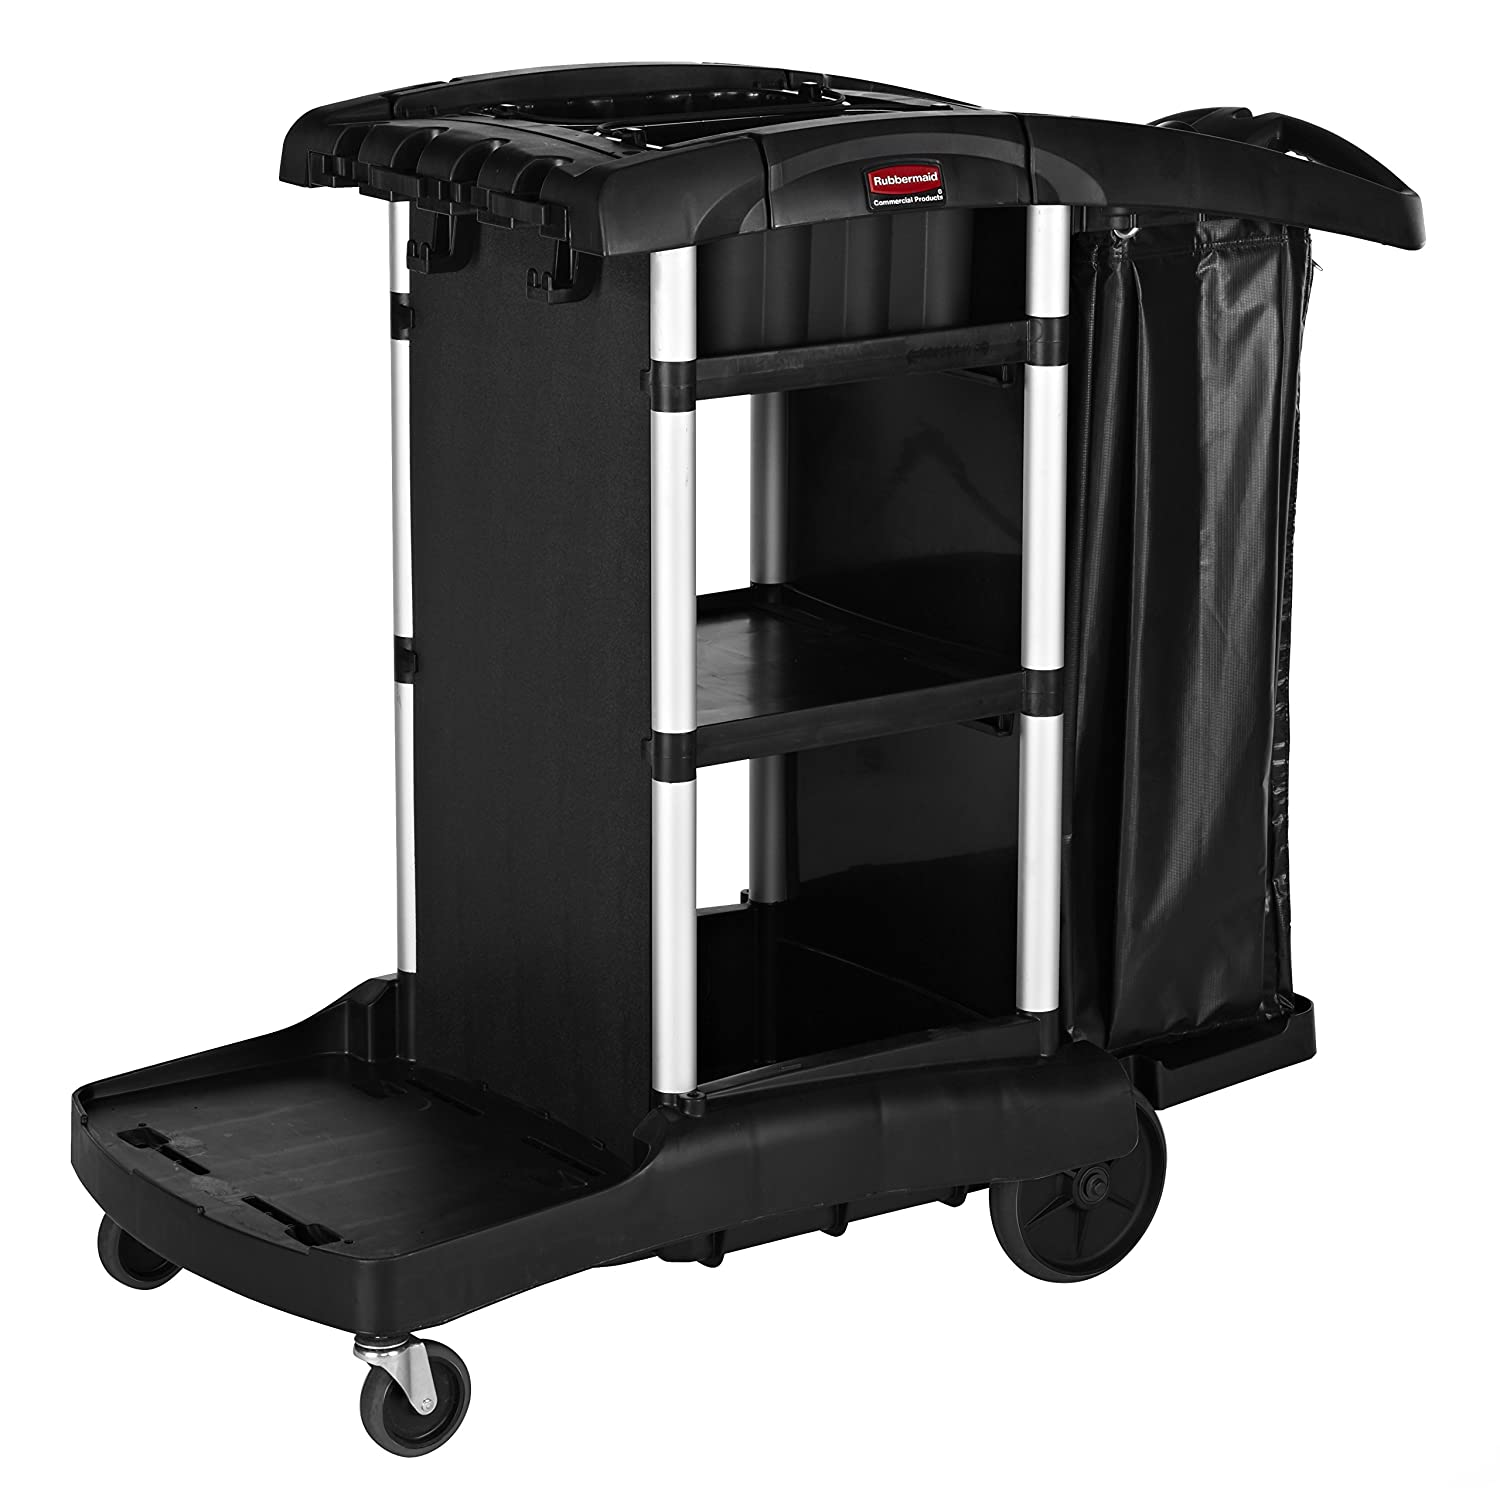 Rubbermaid Commercial Housekeeping Service Cart with 2 Caddies, Black,  1861429: Janitorial Carts: Amazon.com: Industrial & Scientific